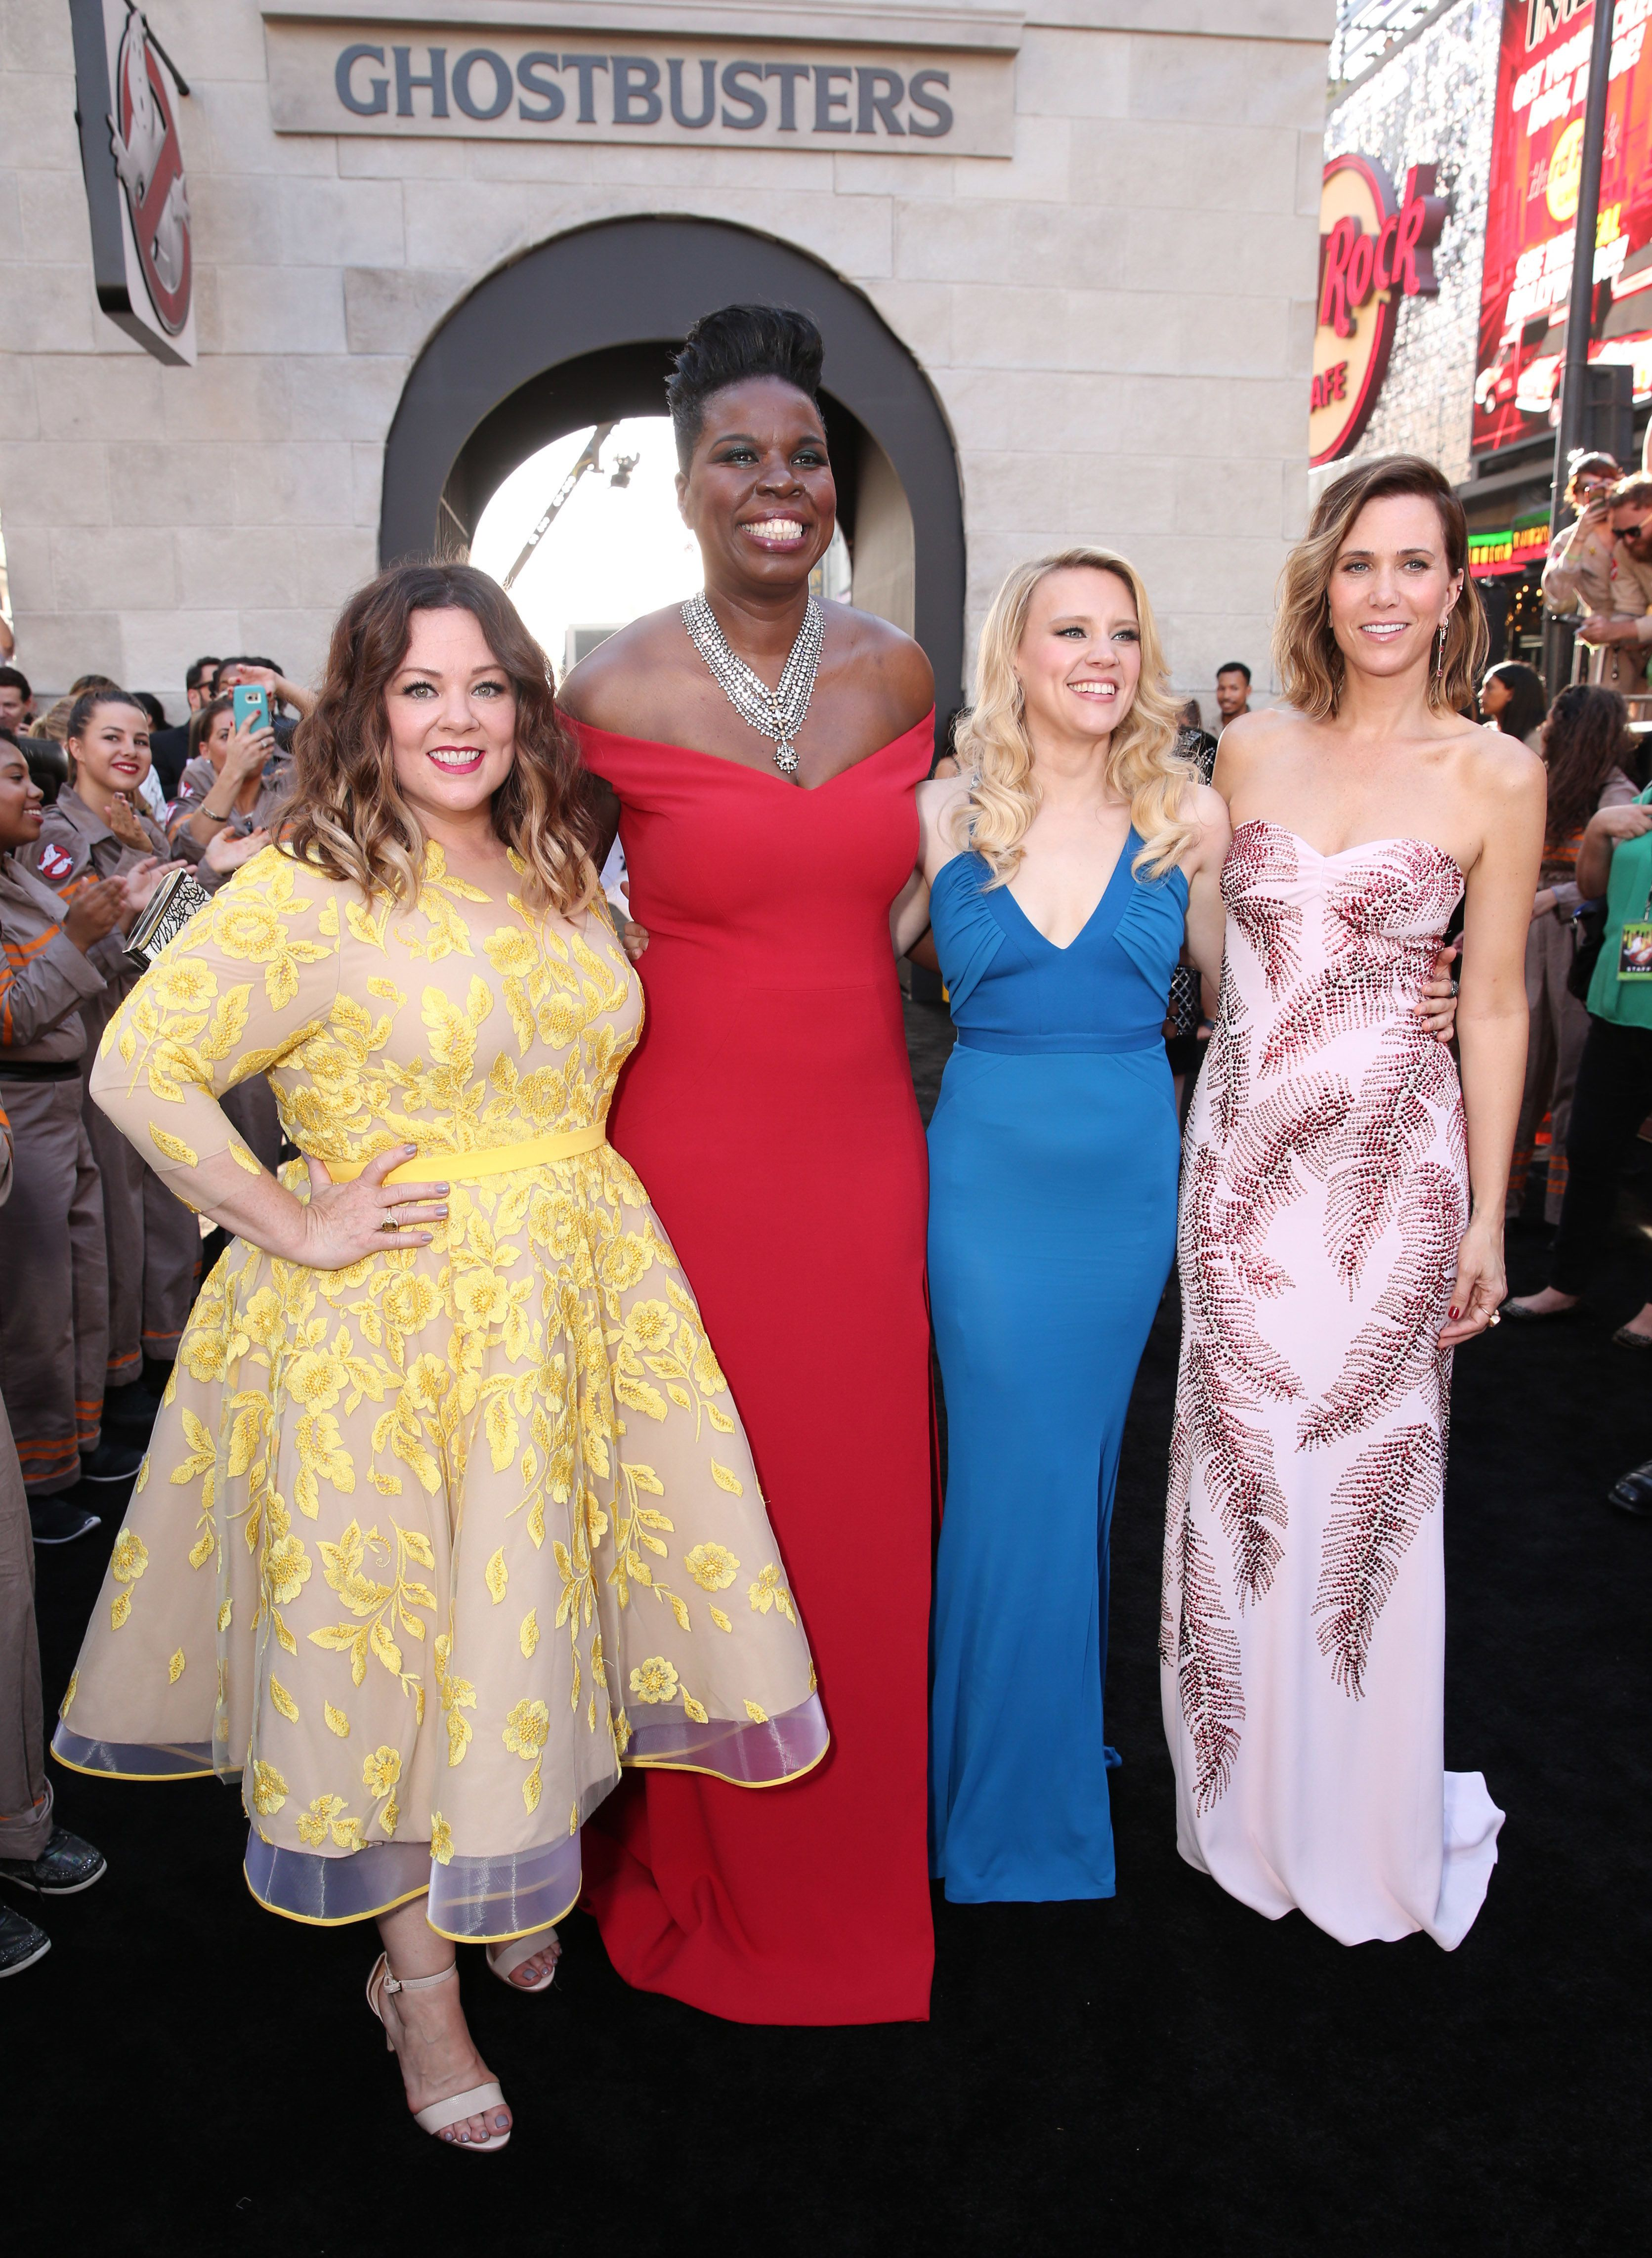 """The all-lady """"Ghostbusters"""" cast that's wreaking chaos and havoc in the lives of millions of fanboys."""